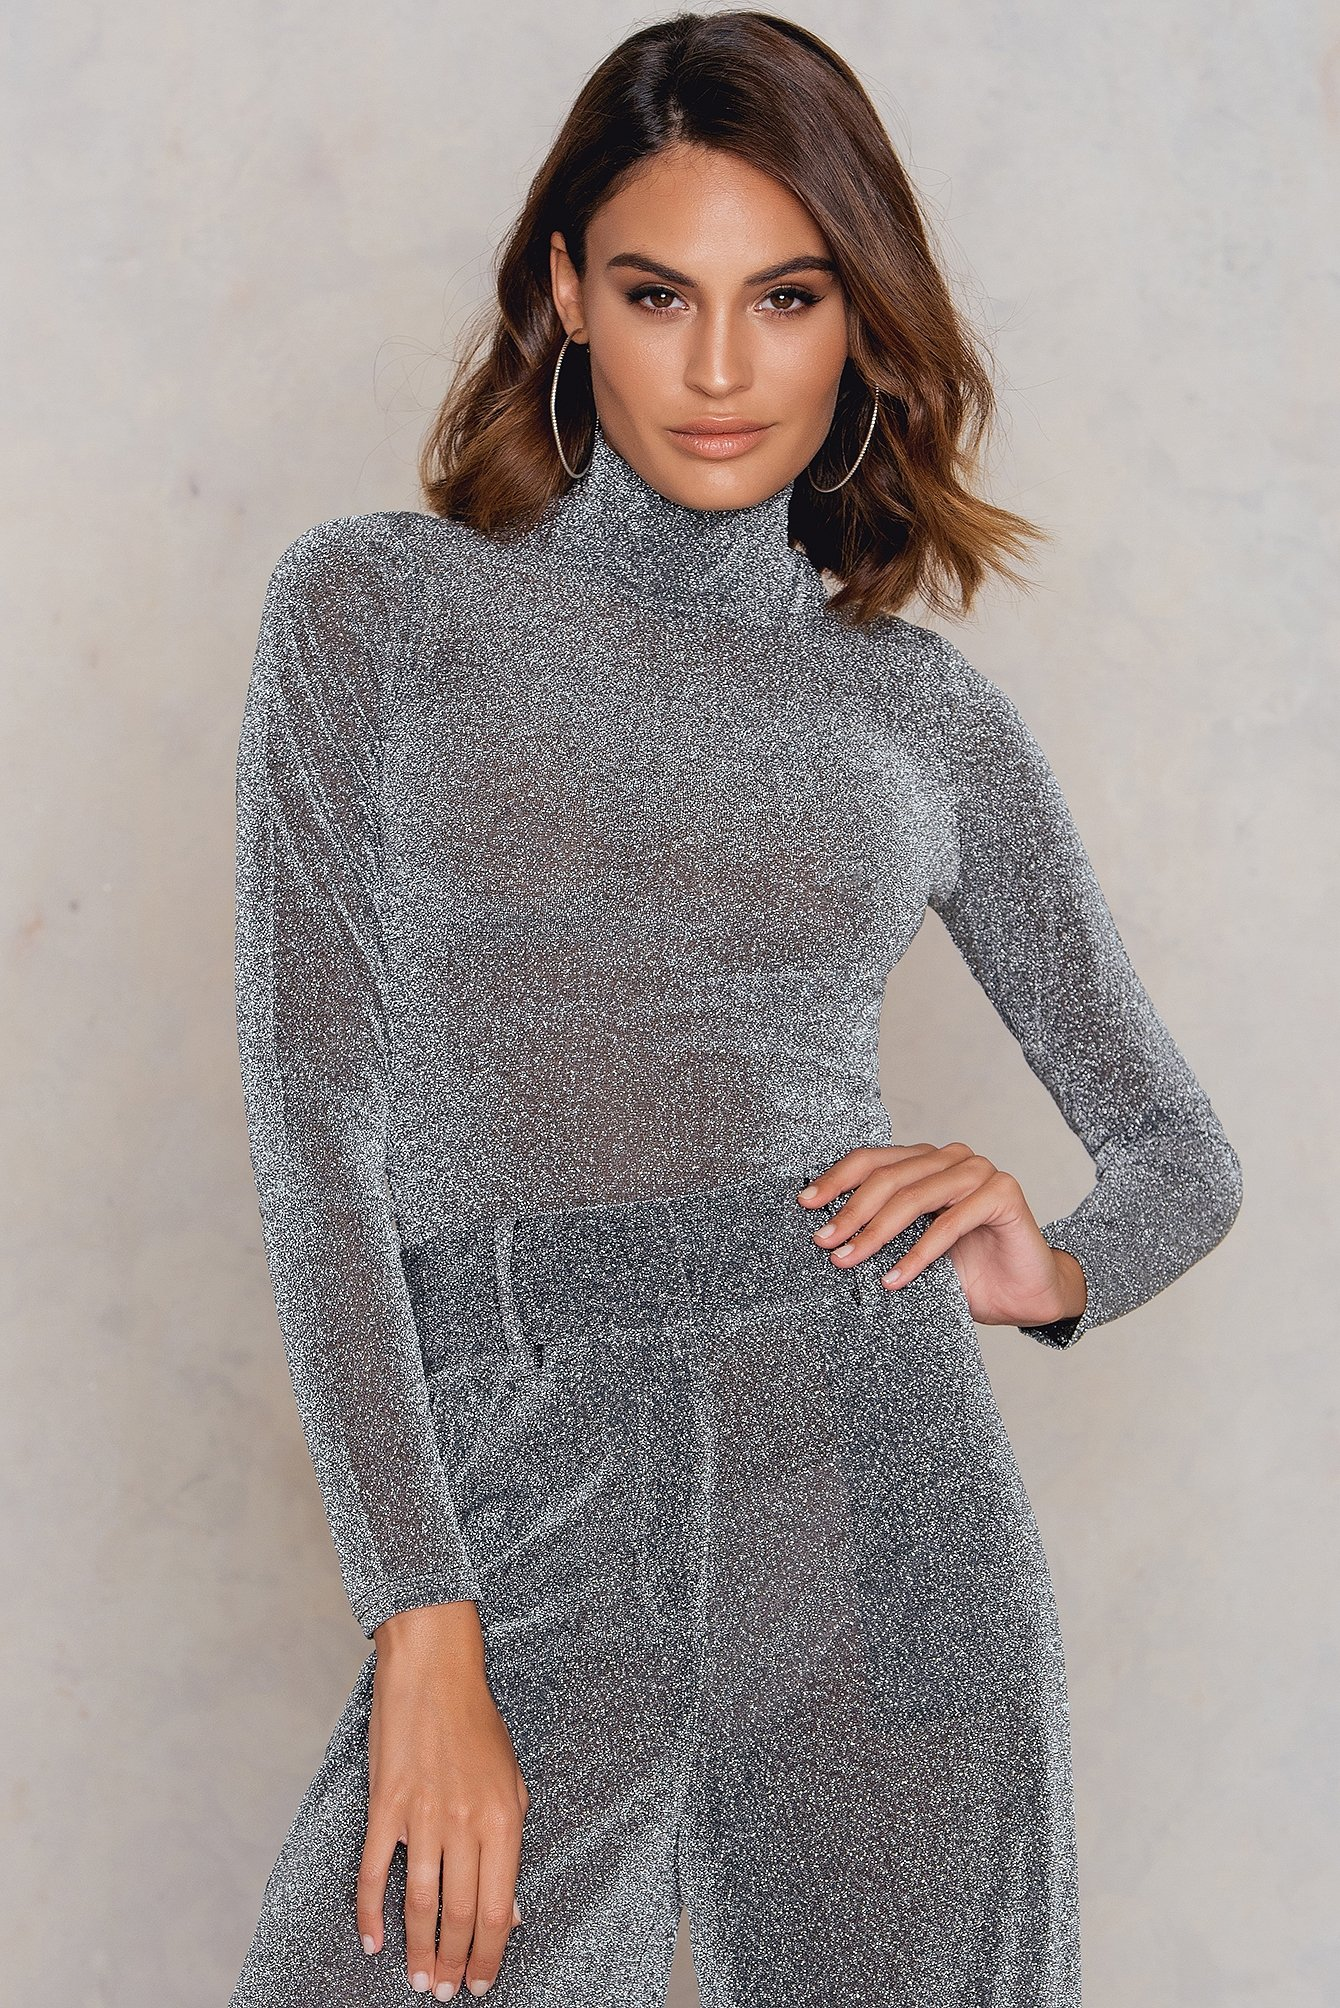 Silver High Neck Glittery Top